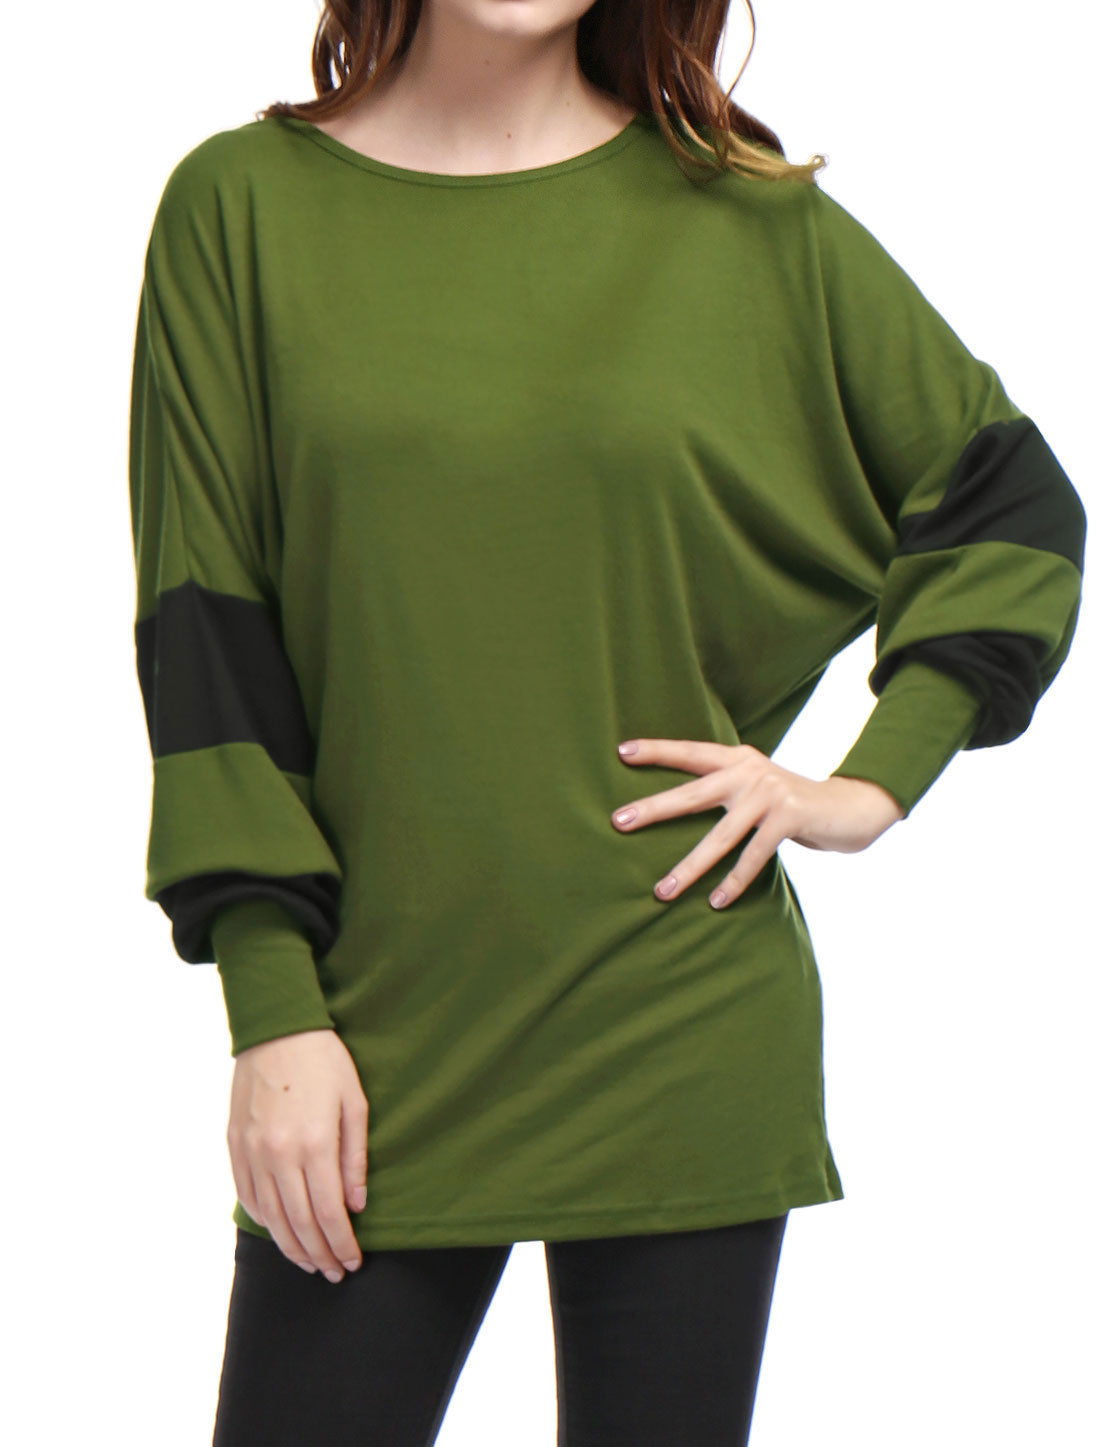 Allegra K Women Color Block Batwing Loose Tunic Top Green S